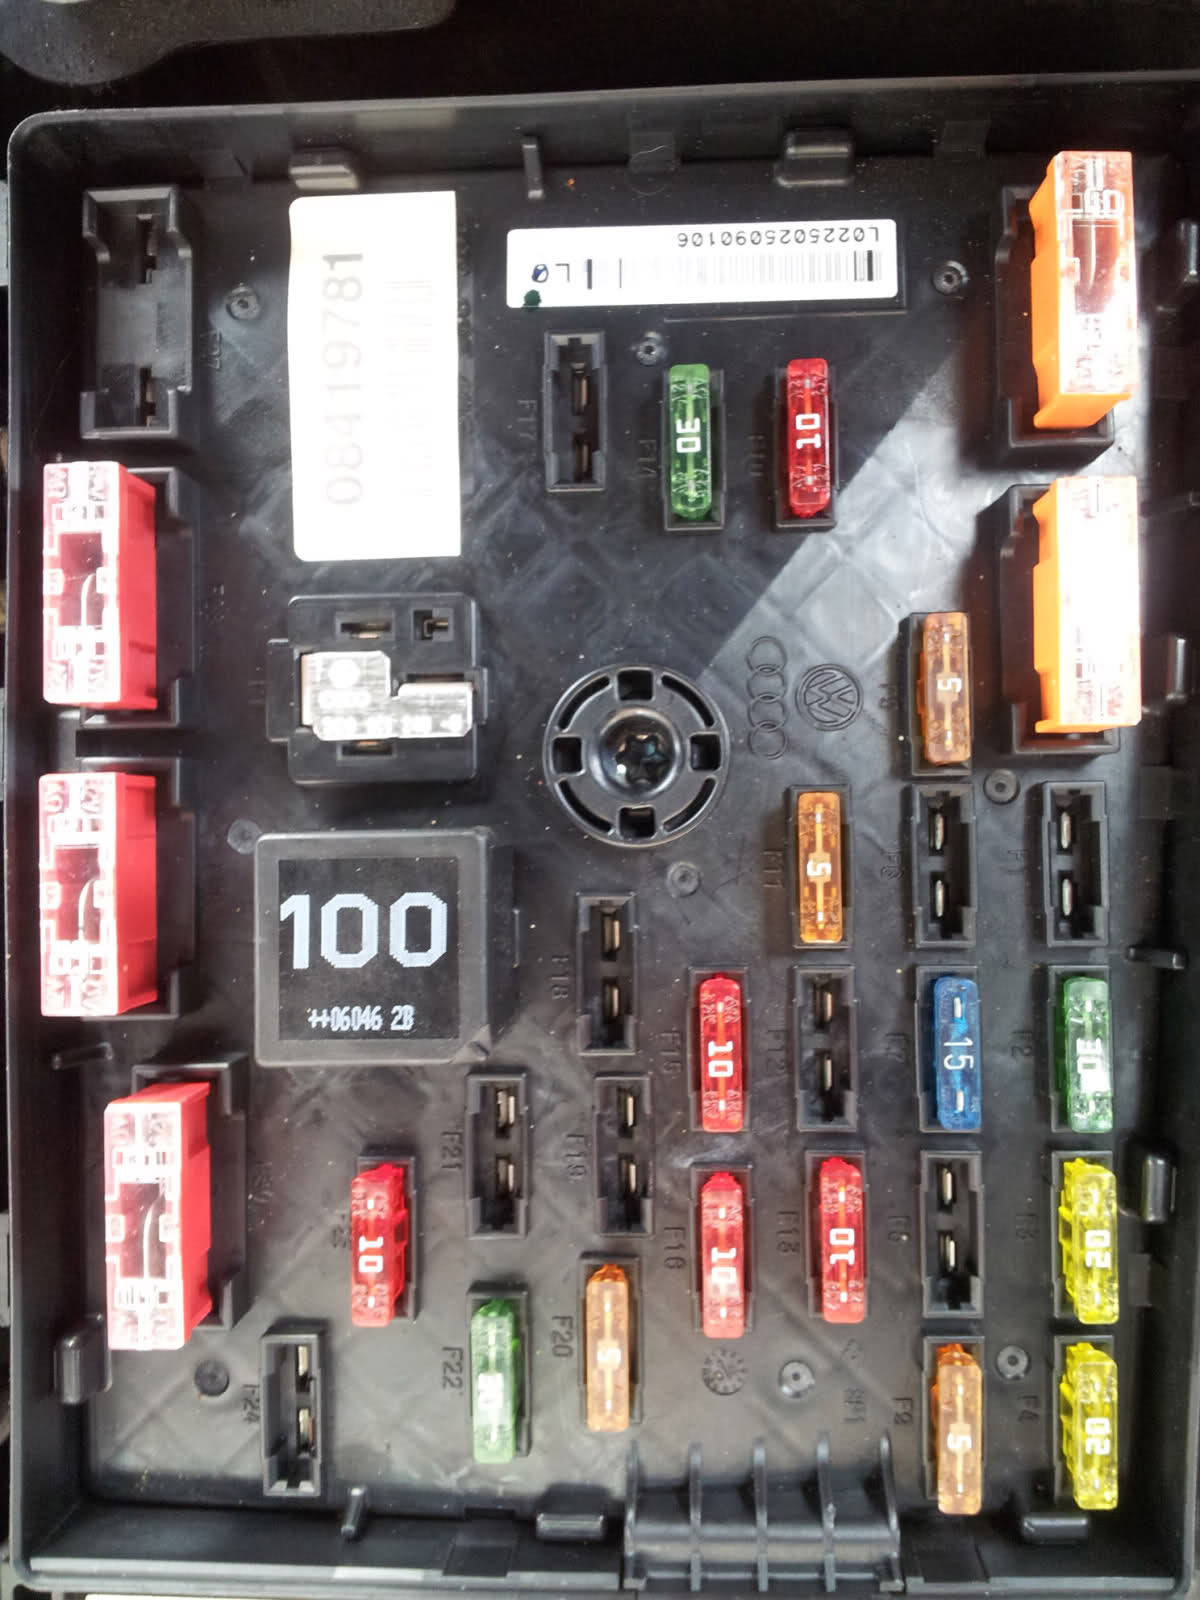 Vw Passat Fuse Box Diagram Ggpoerh on Ford F Lariat Fuse Box Diagram Wiring Diagrams Instructions